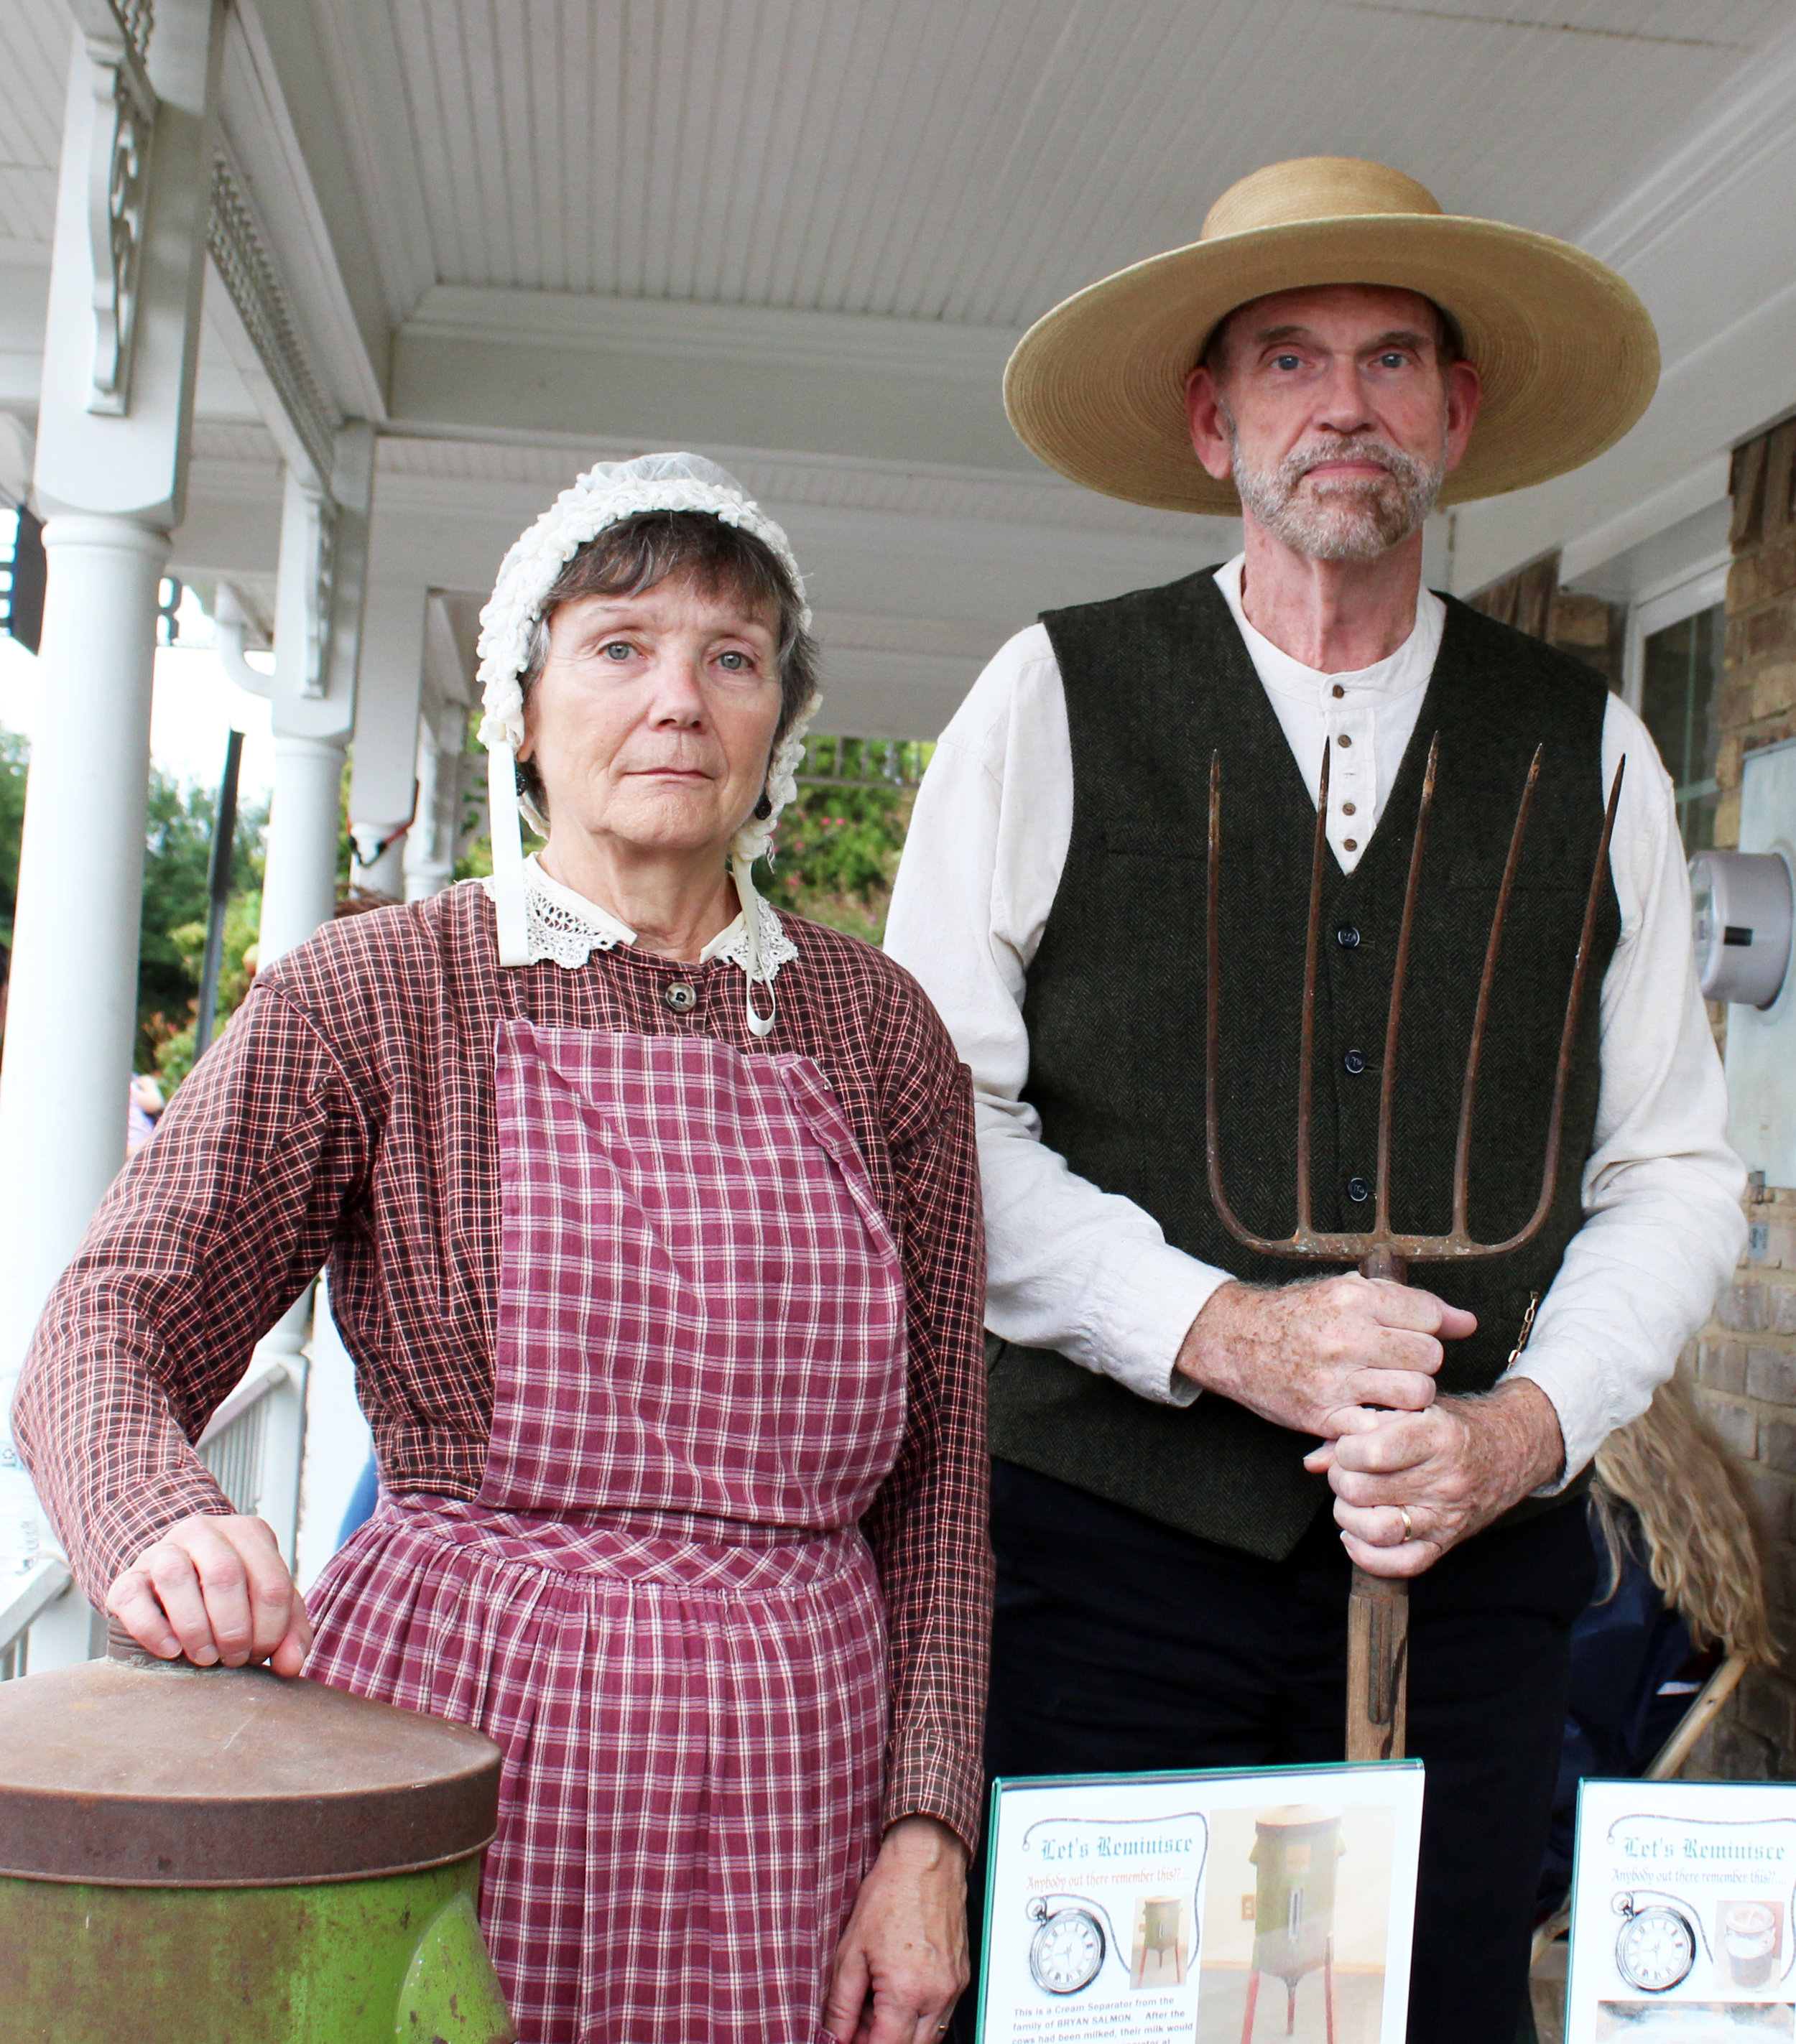 Tom Leach and Becky Clemens chose not to smile for this photo to reflect the time period they represented and the limitations that daguerreotype photos presented.